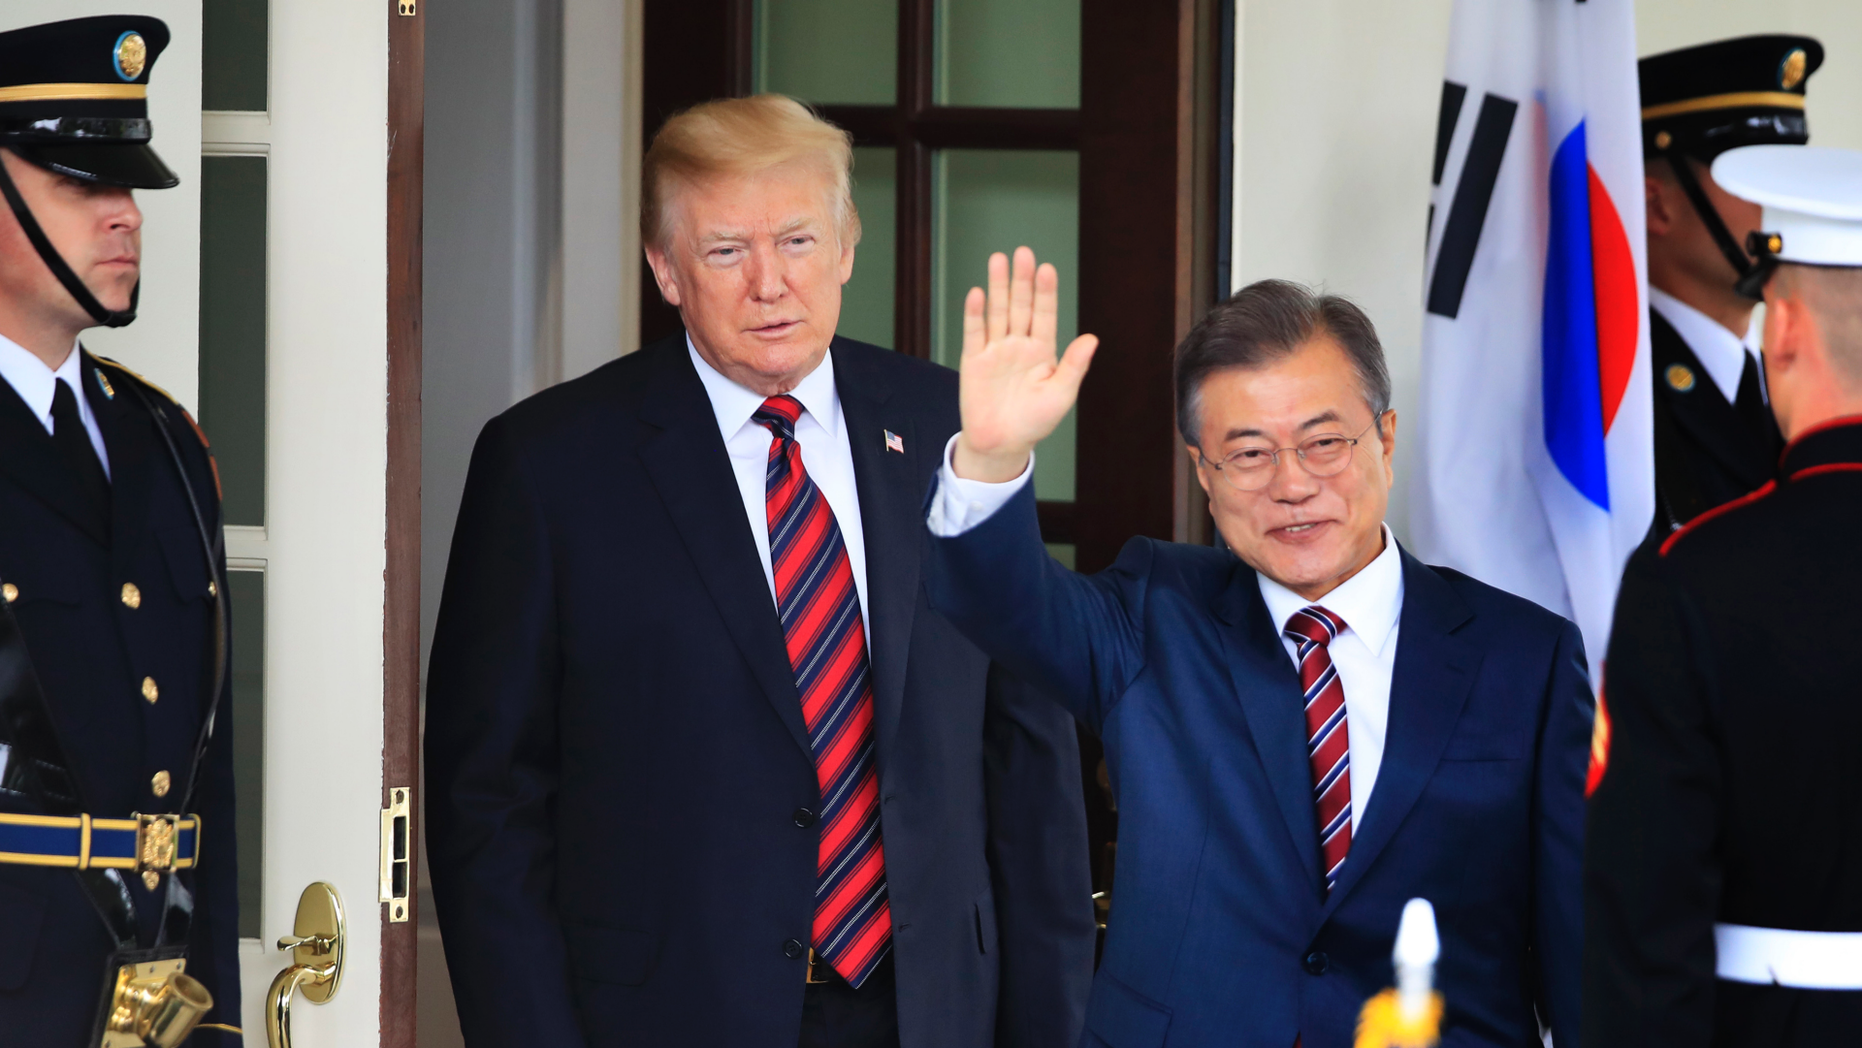 FILE - In this May 22, 2018, file photo, South Korean President Moon Jae-in waves as he is welcomed by U.S. President Donald Trump to the White House in Washington. South Korea said on Friday, March 29, 2019, Moon will travel to the United States on April 10-11 to meet with Trump for a summit on North Korean nuclear diplomacy. (AP Photo/Manuel Balce Ceneta, File)